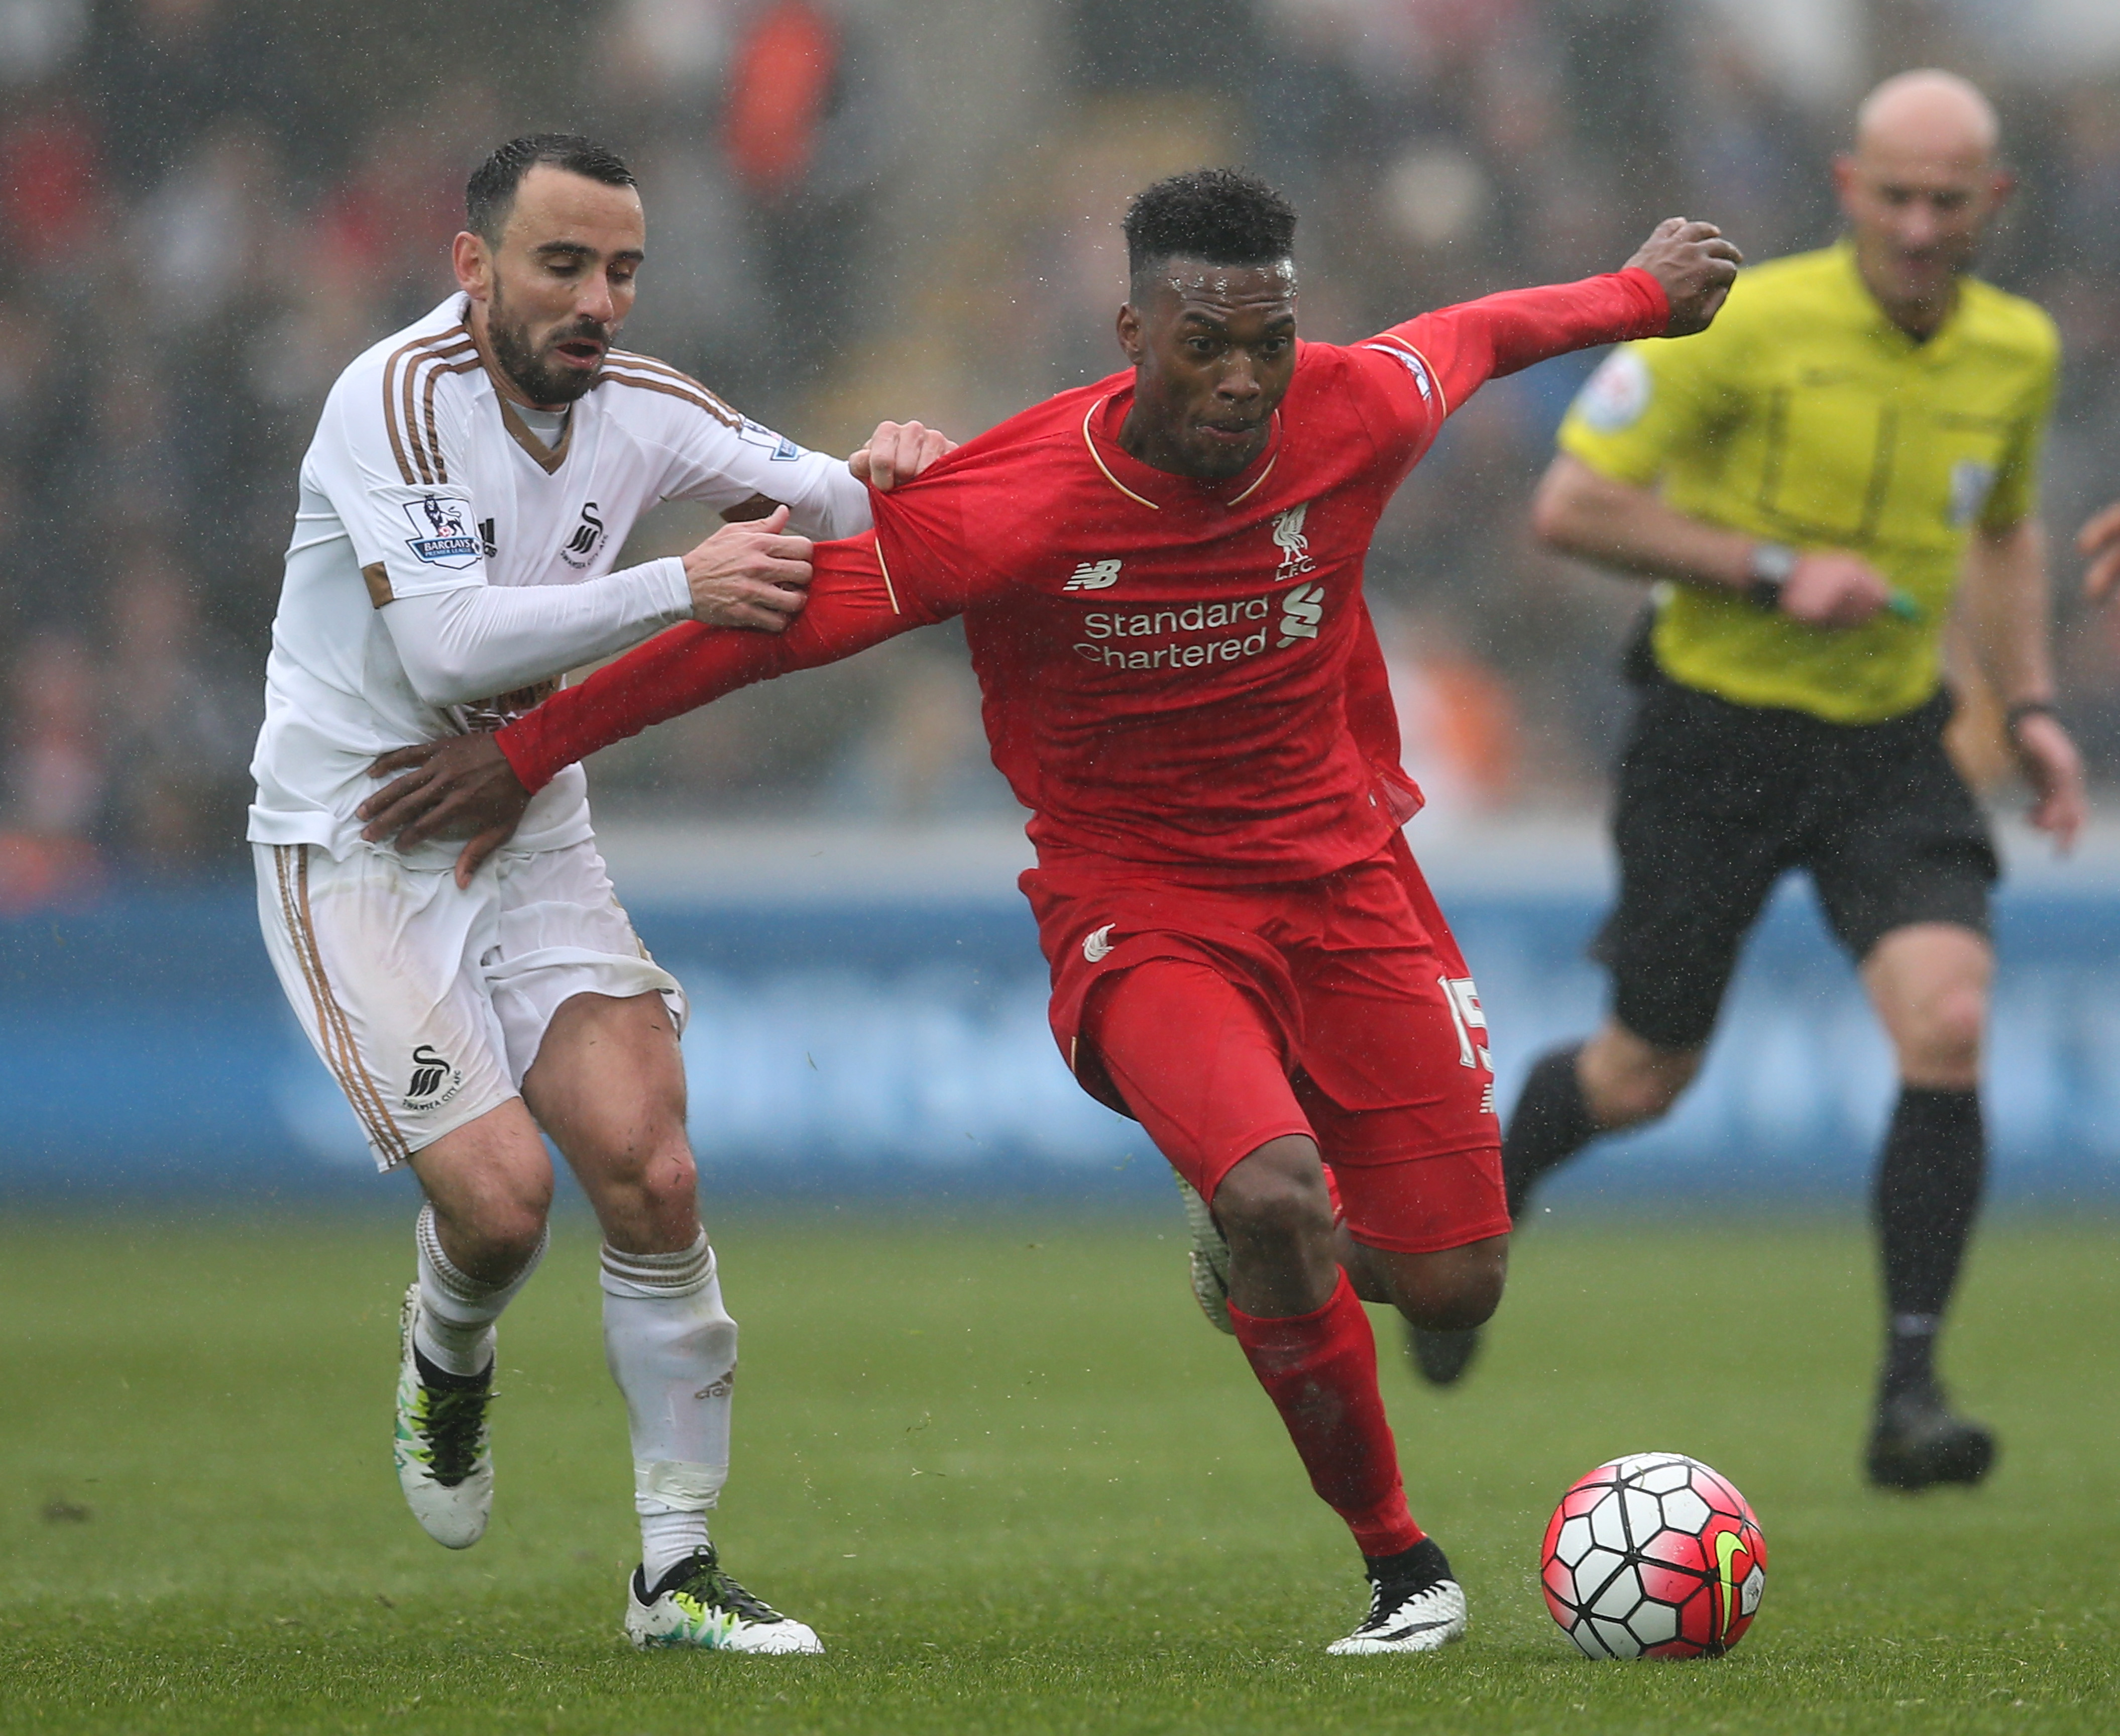 Swansea City vs. Liverpool: Combined XI ahead of Premier League clash